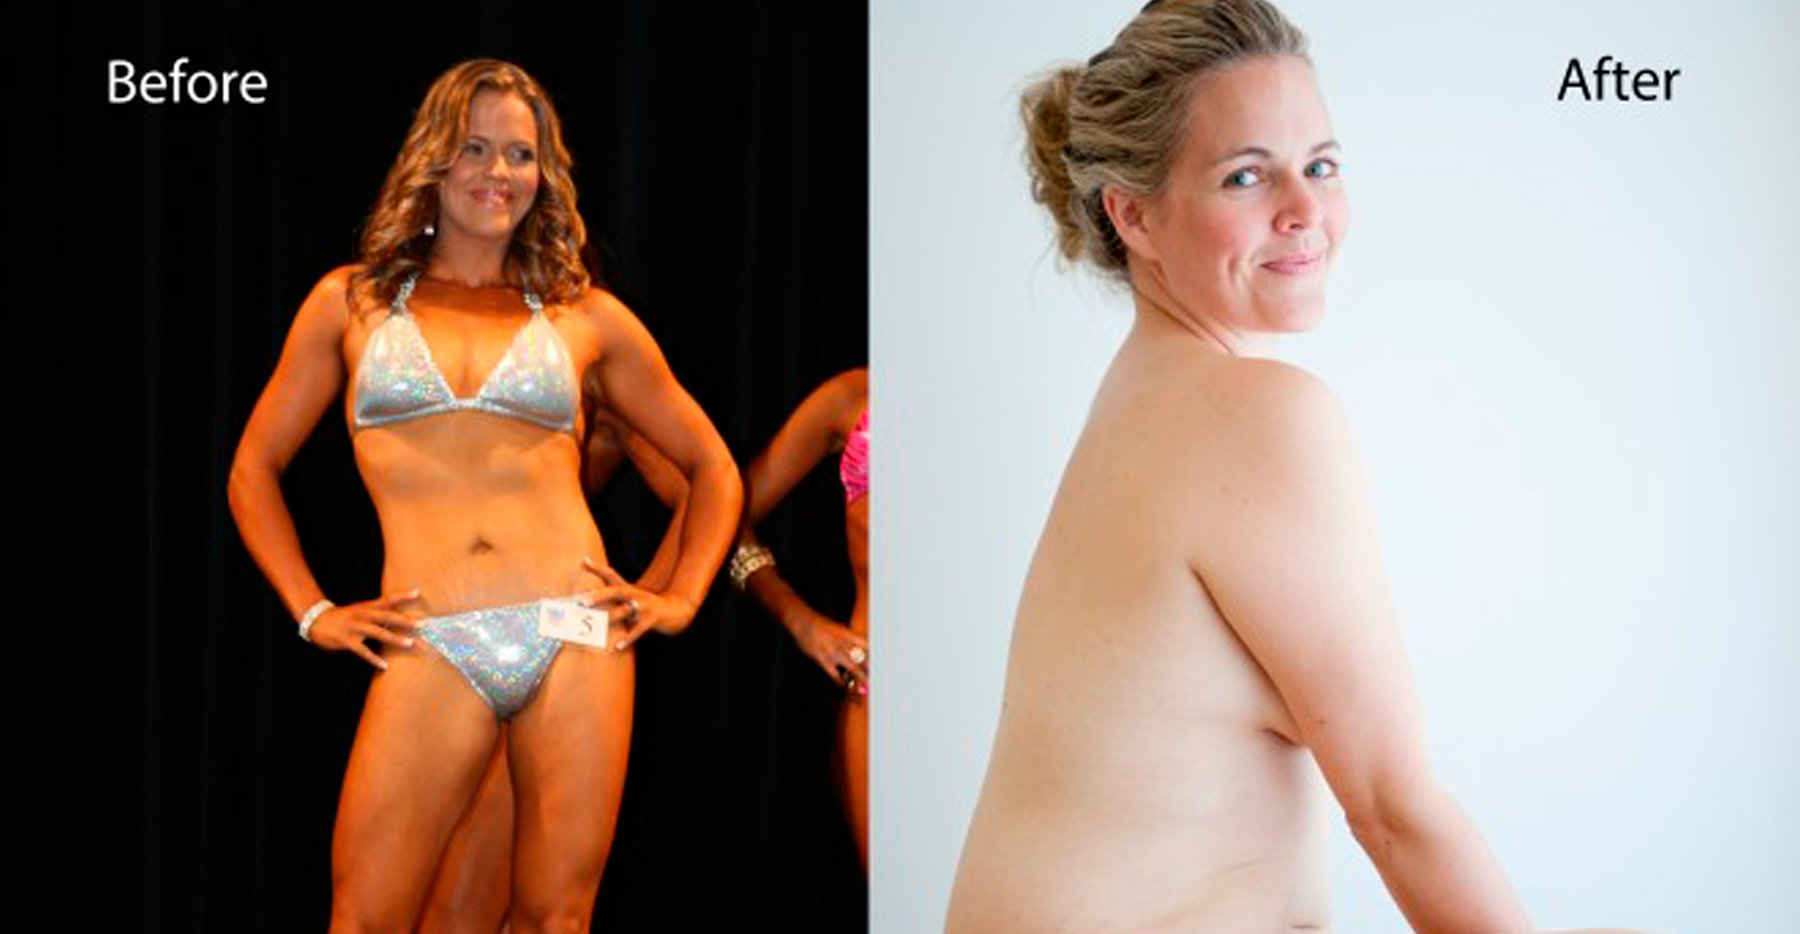 aas - The 'Before And After' Photo Of Australian Mom Goes Viral, Inspires Millions Across The Globe